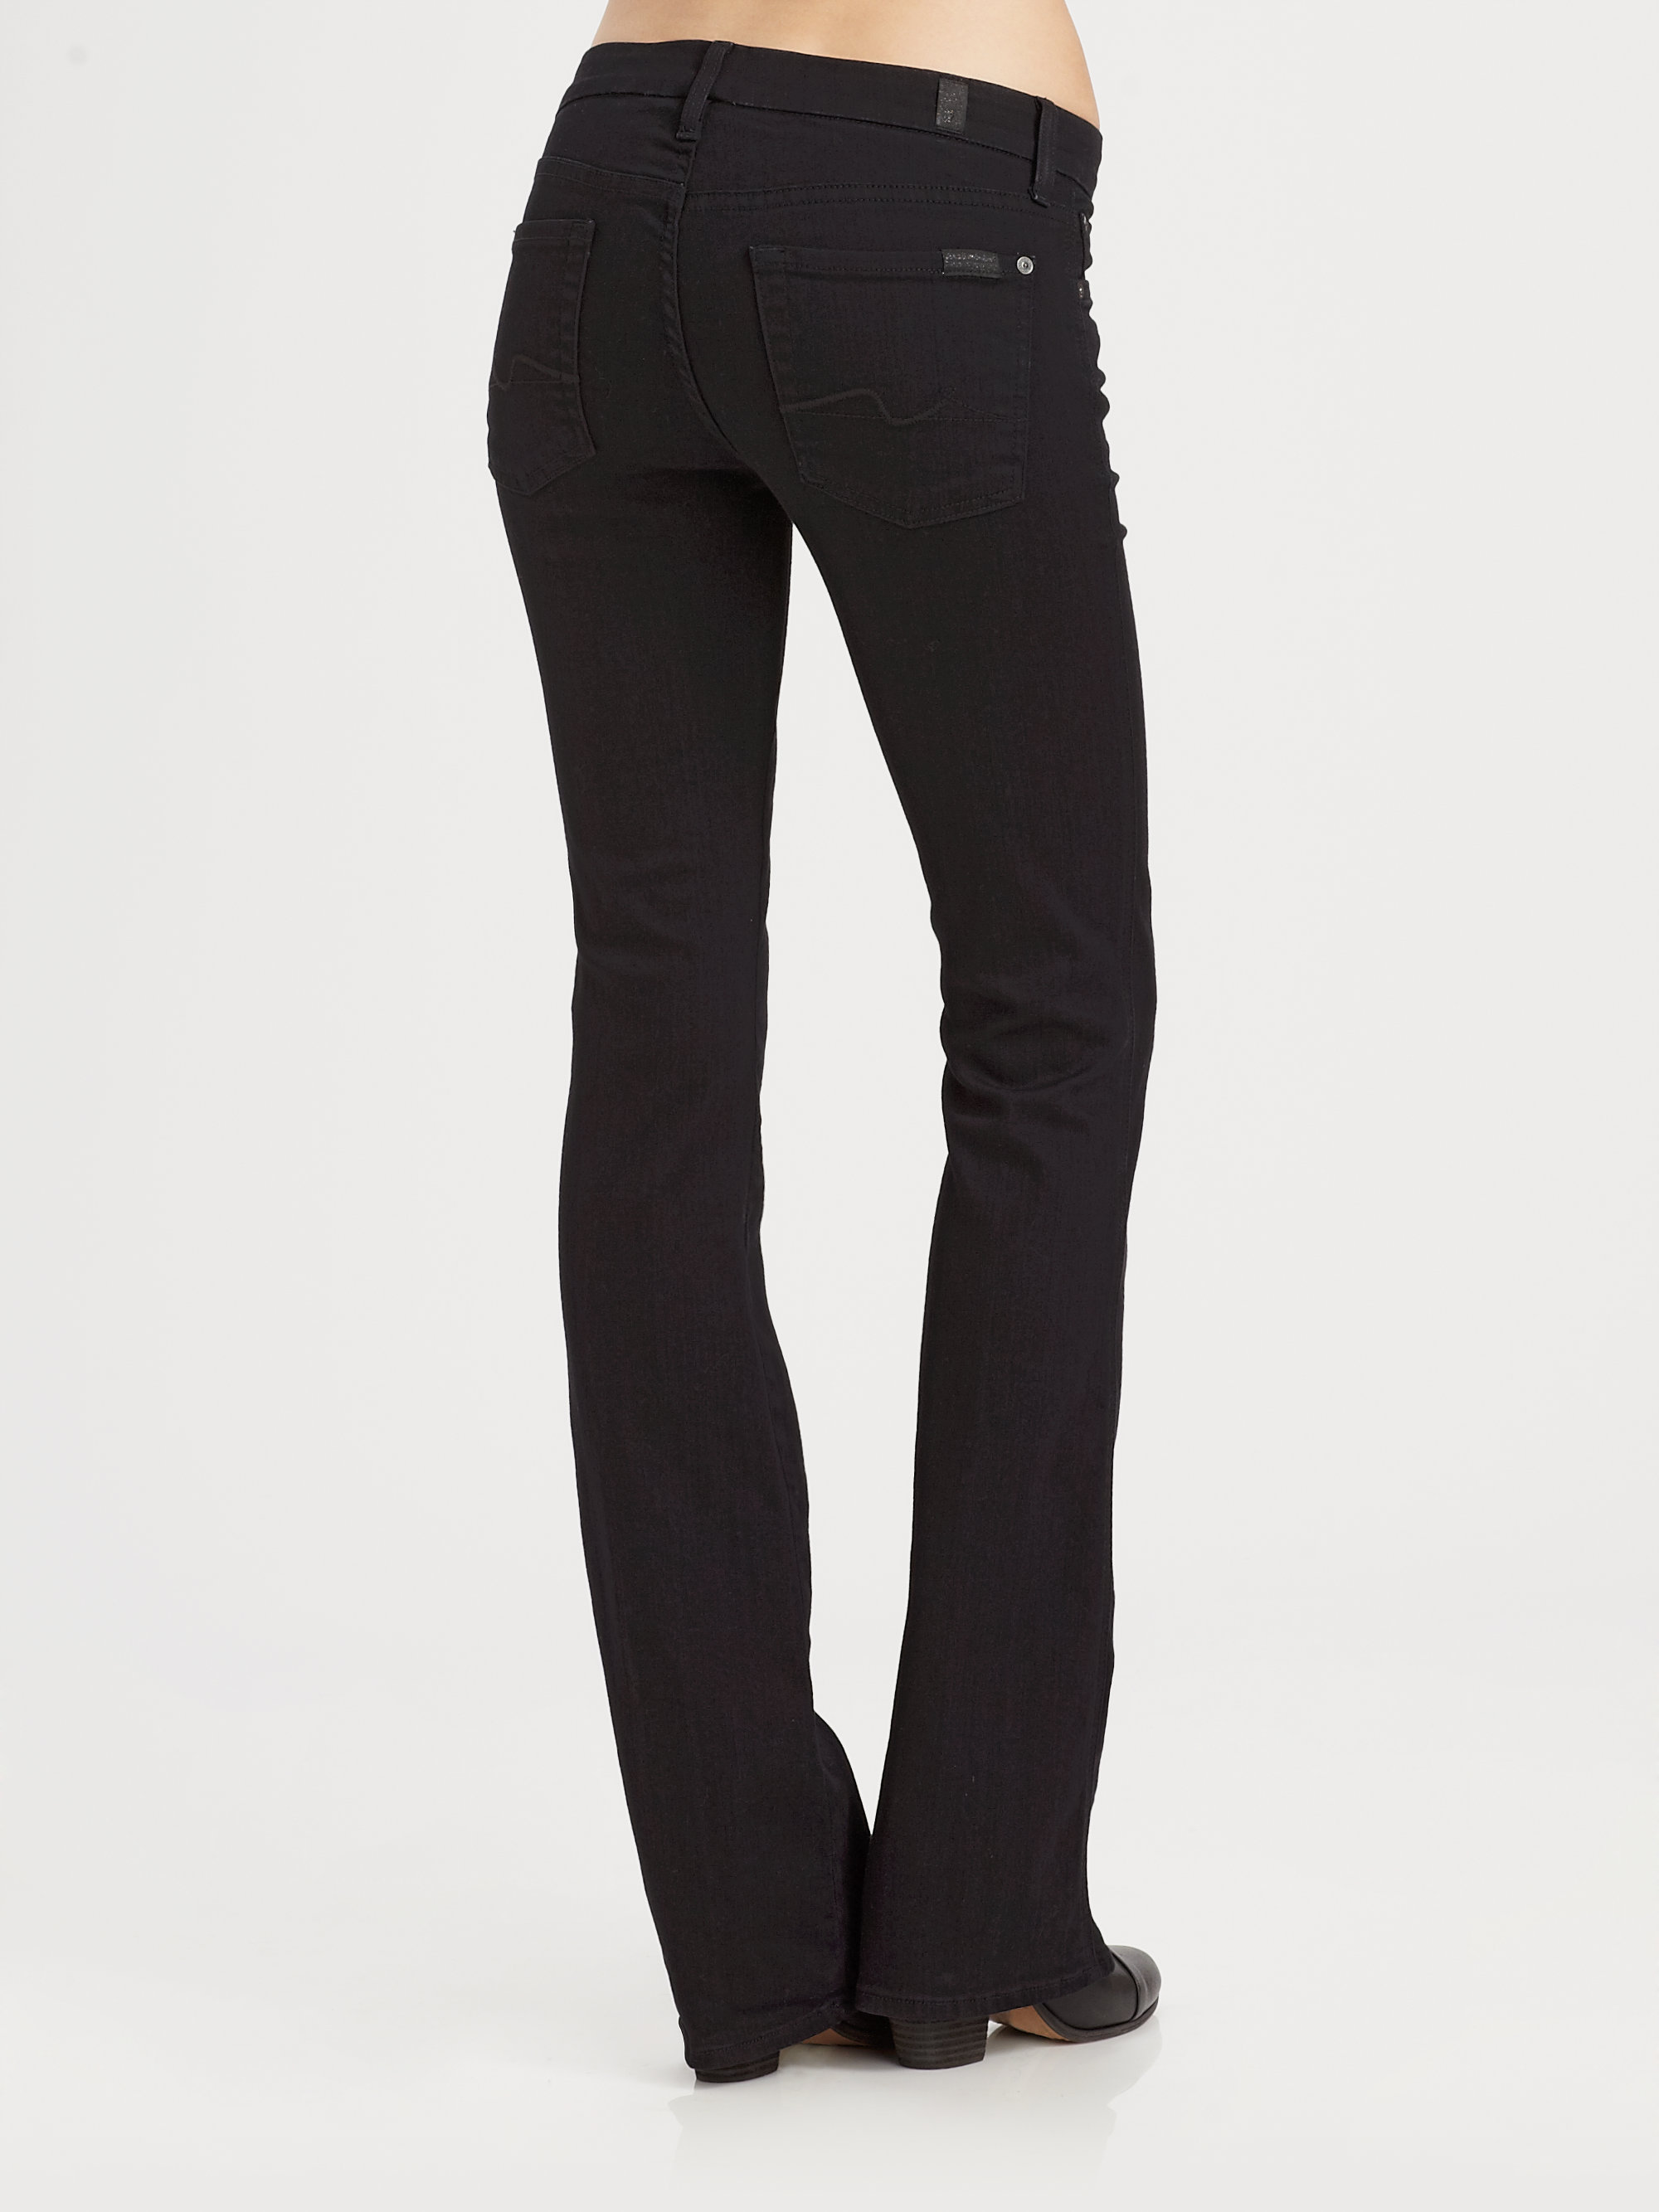 Black 7 Jeans | Jeans To